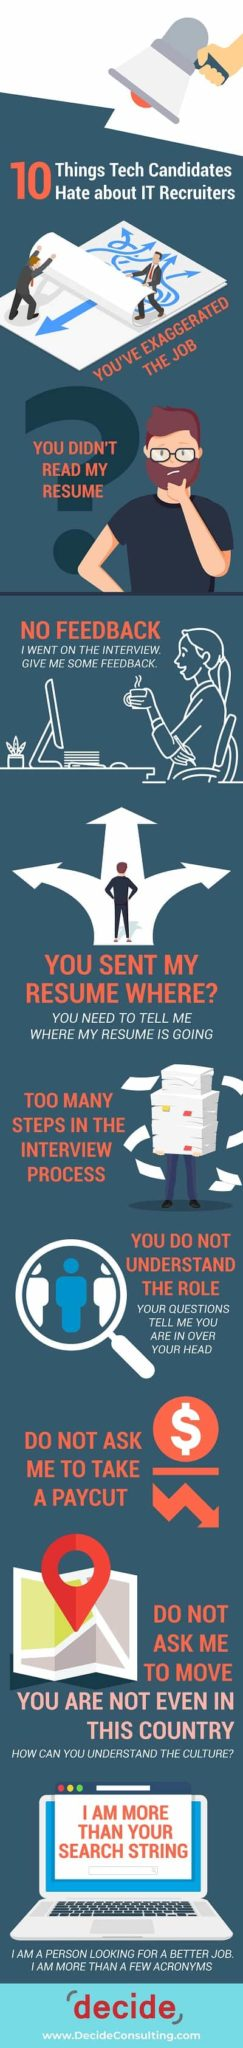 Infographic 10 Things Tech Candidates Hate about IT Recruiters